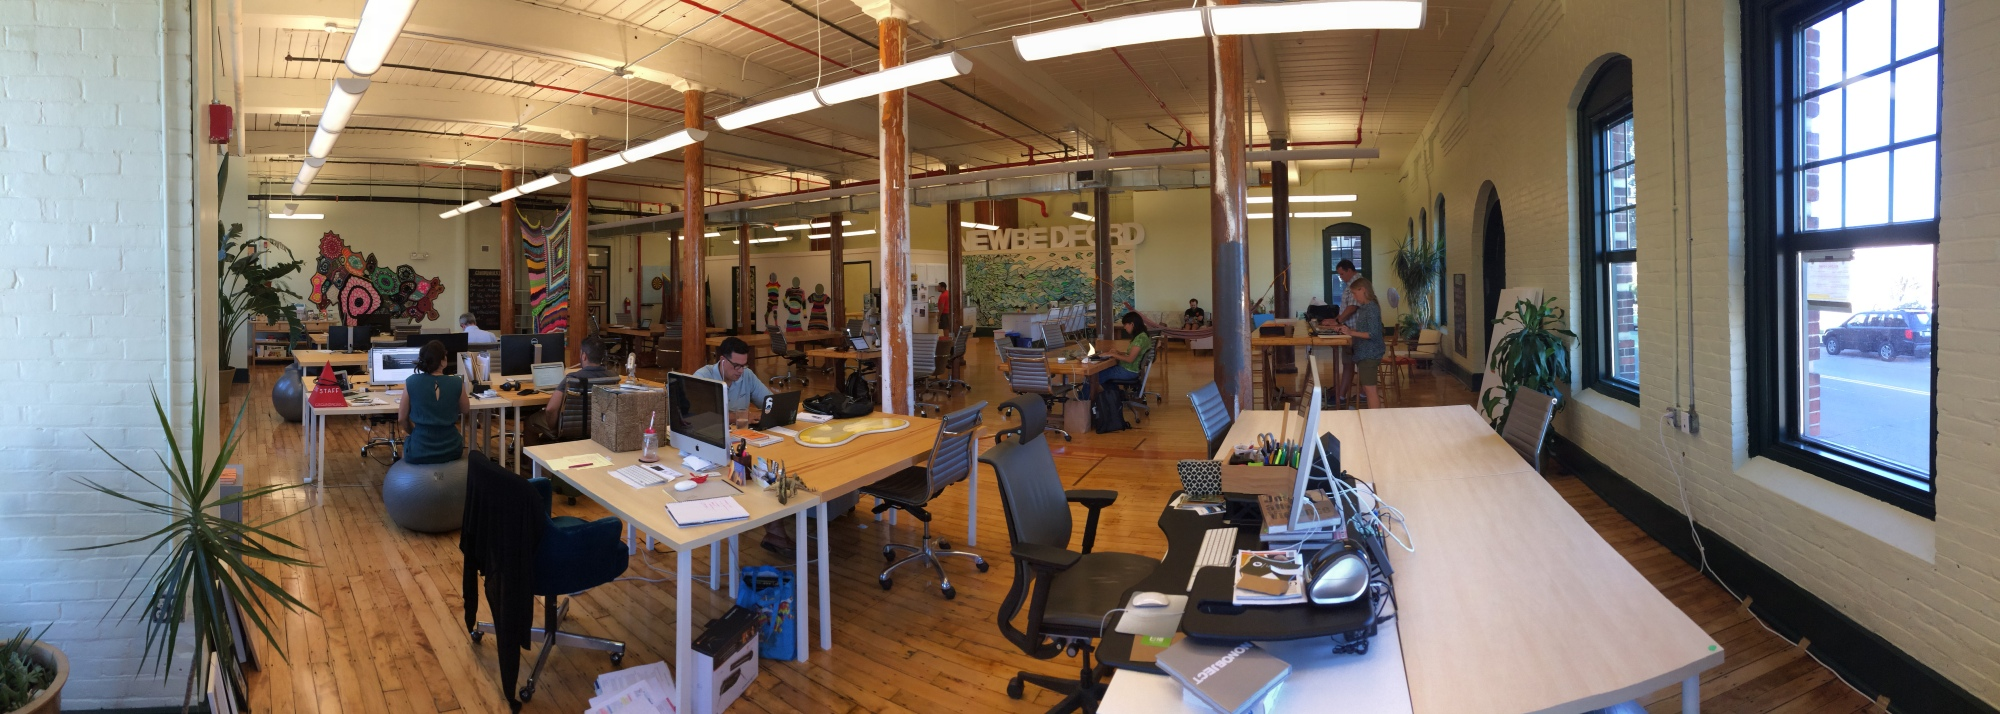 Groundwork co-working space in New Bedford, MA